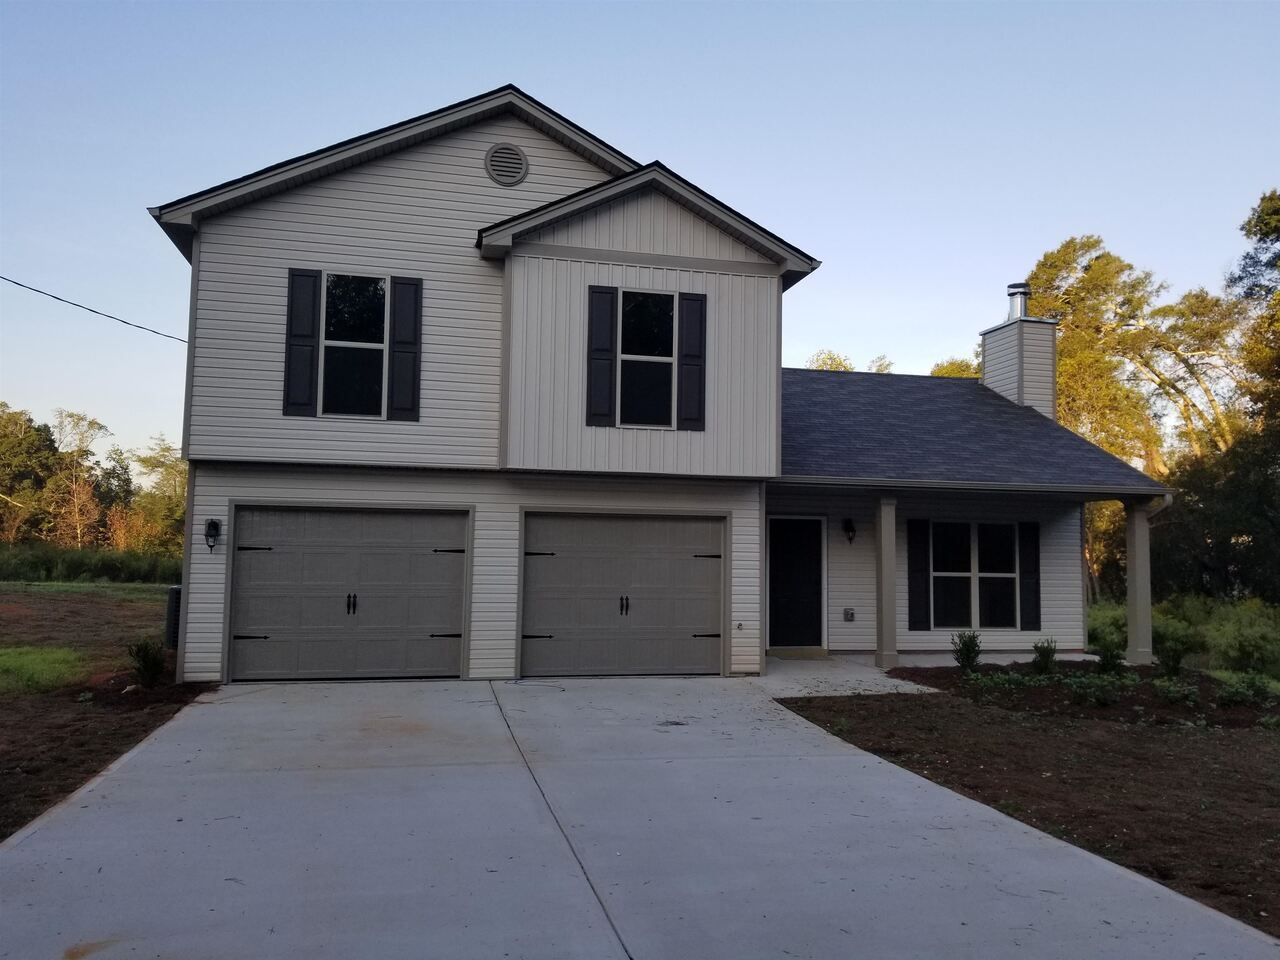 95 Armstrong Drive #102, Mansfield, GA 30055 - MLS#: 9052229